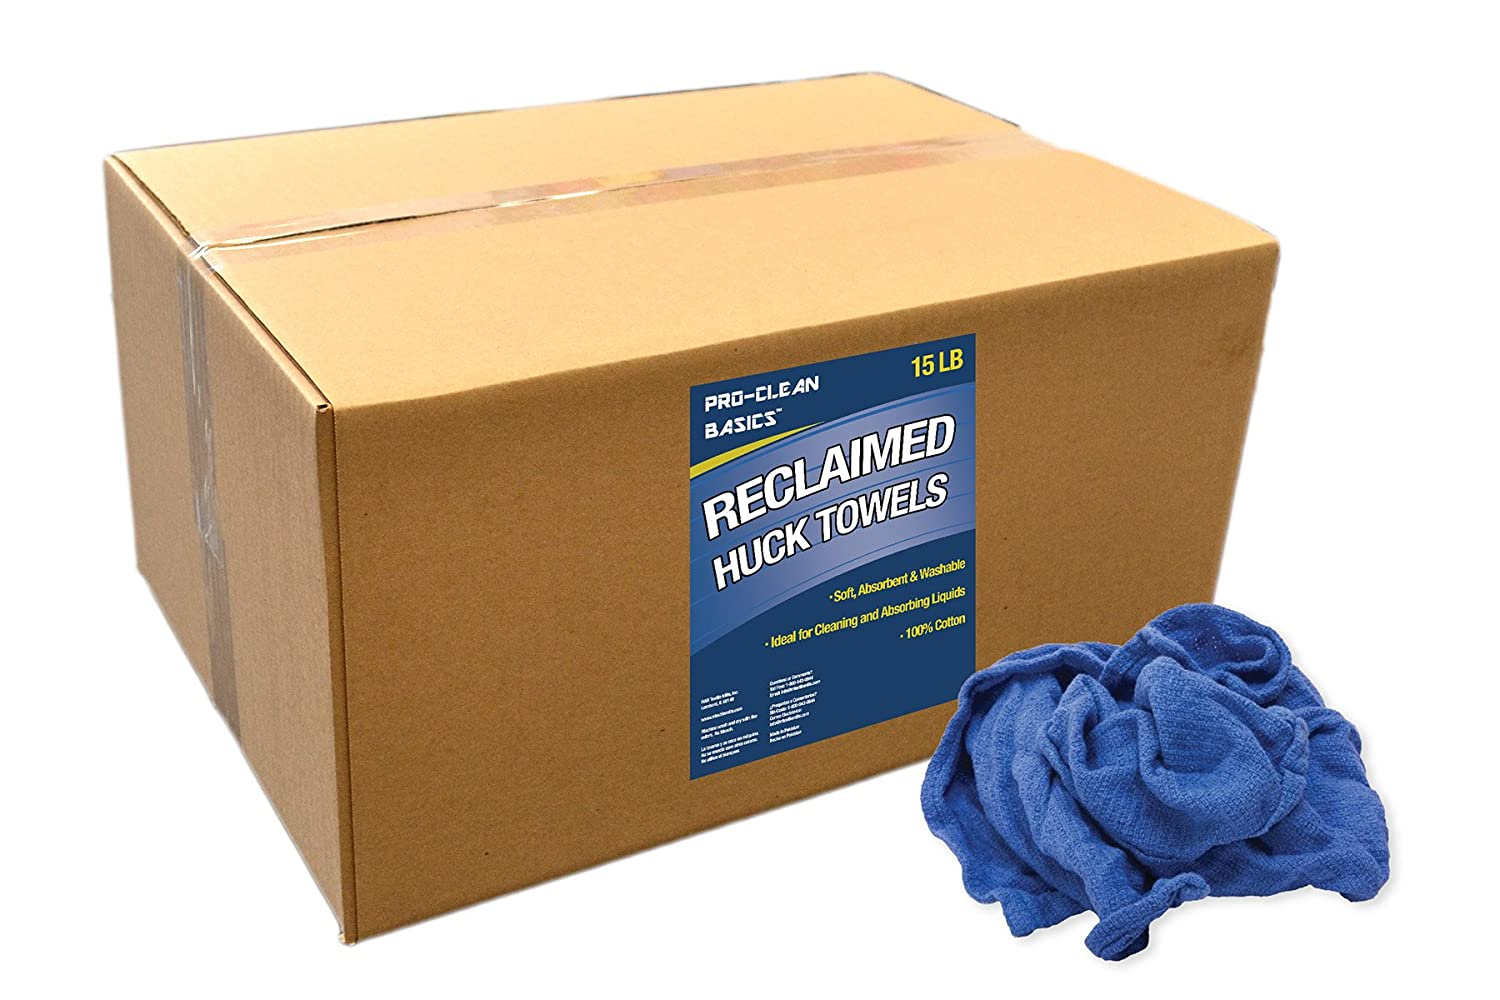 15 lb Pro-Clean Basics Reclaimed Huck or Surgical Towels Box R/&R Textile Mills A99101